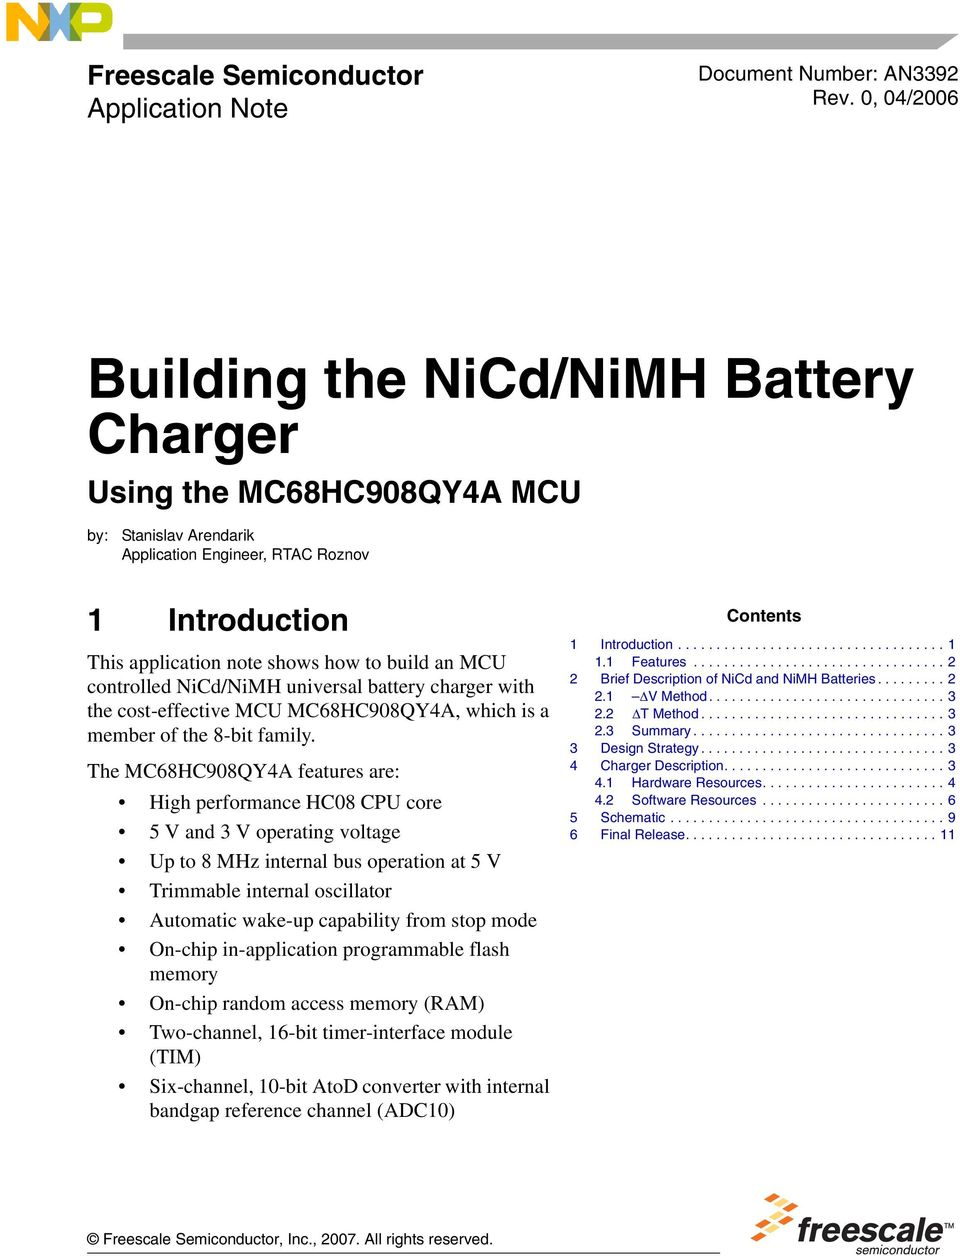 Building The Nicd Nimh Battery Charger Using Mc68hc908qy4a Mcu Pdf Automatic Circuit Controlled Universal With Cost Effective Mc68hc908qya Which